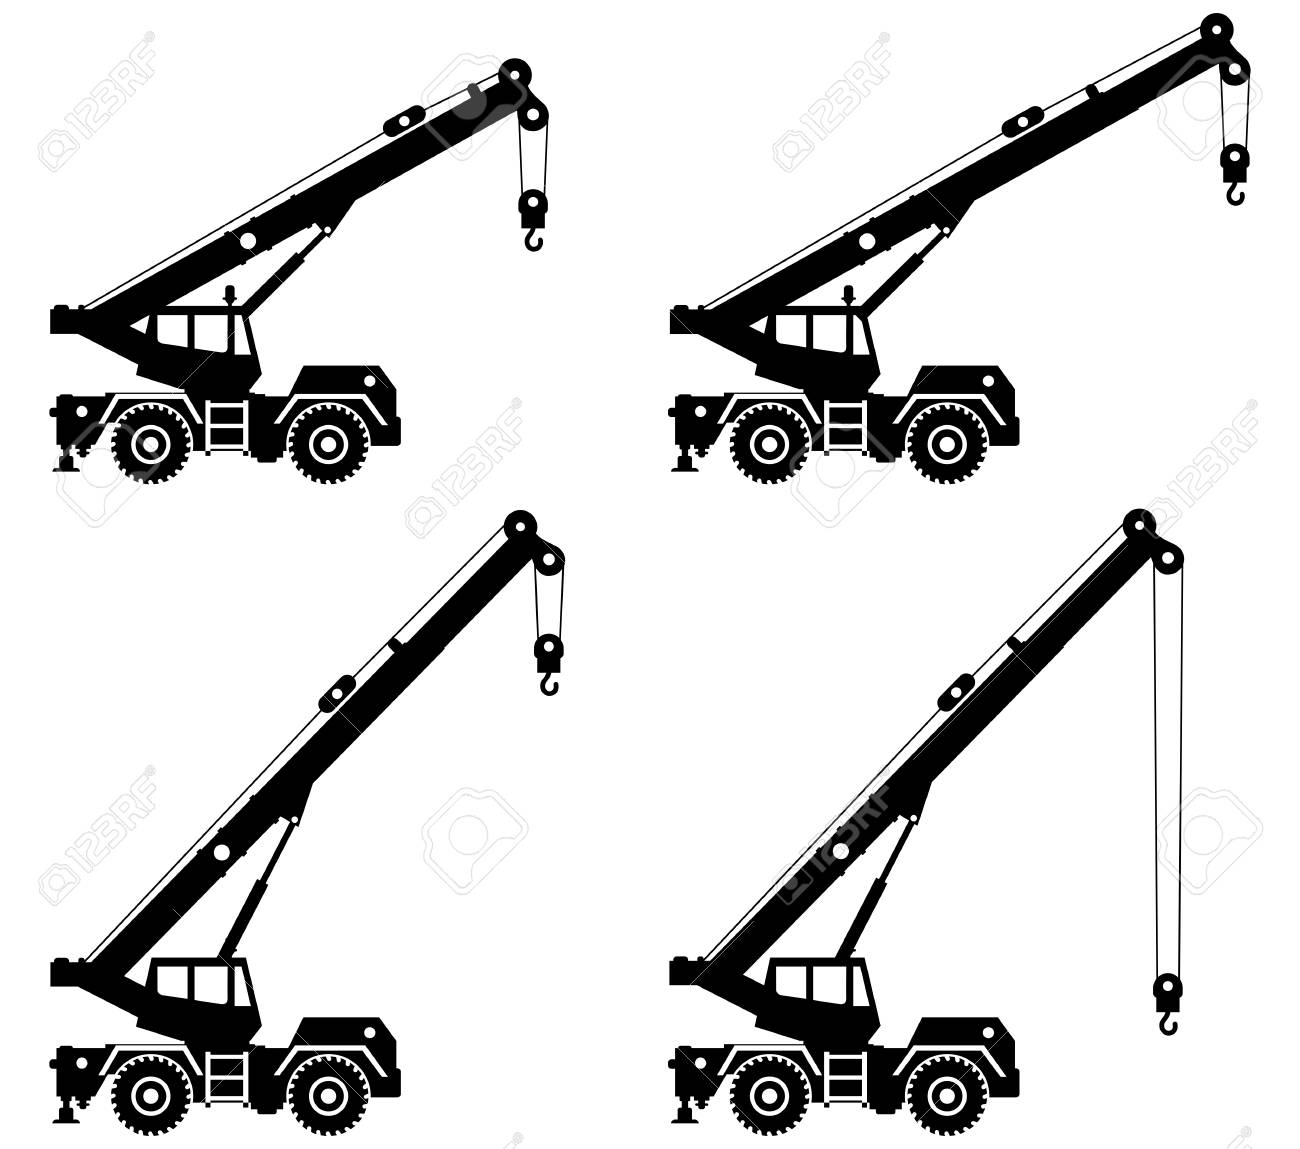 Silhouette of crane truck with different boom position. - 100269345